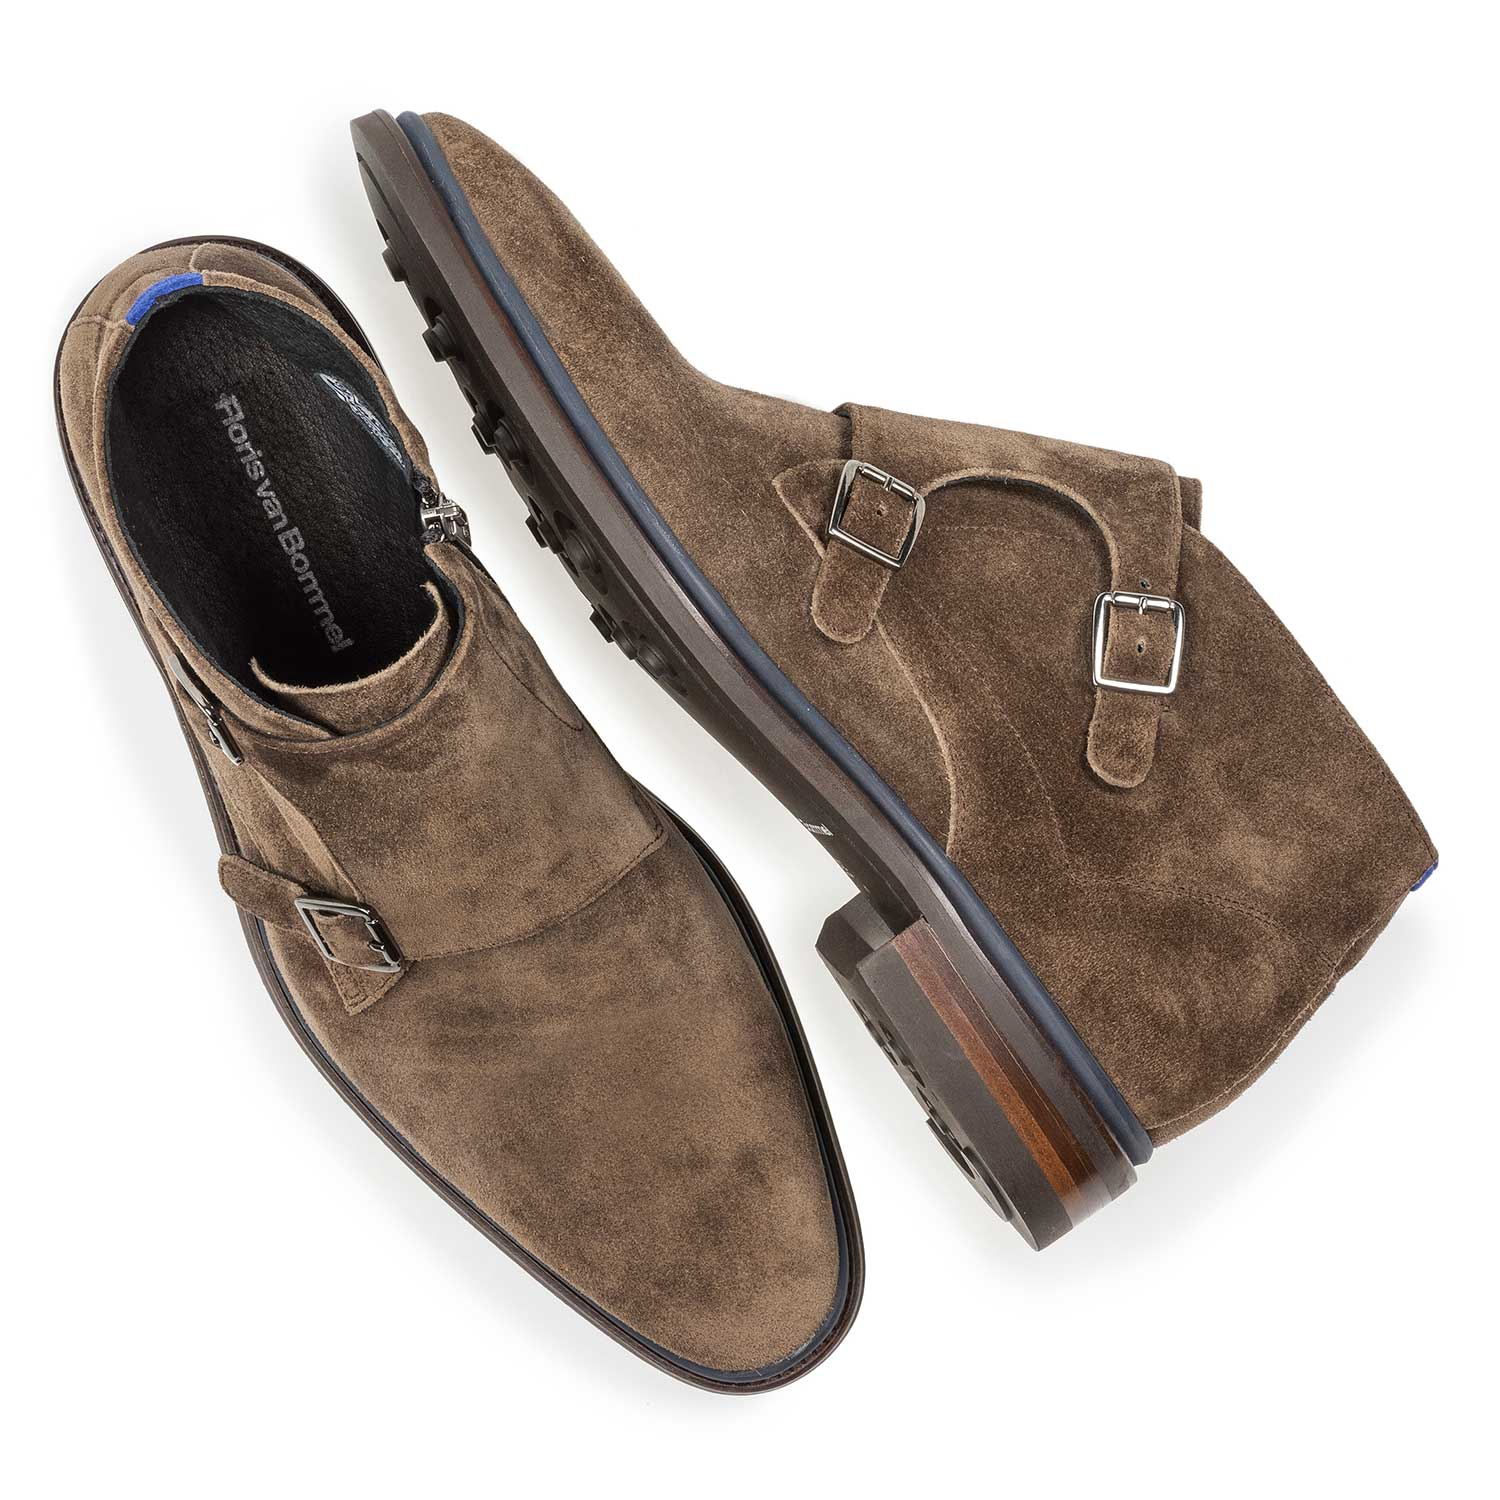 10672/02 - Dark taupe-coloured suede monk strap